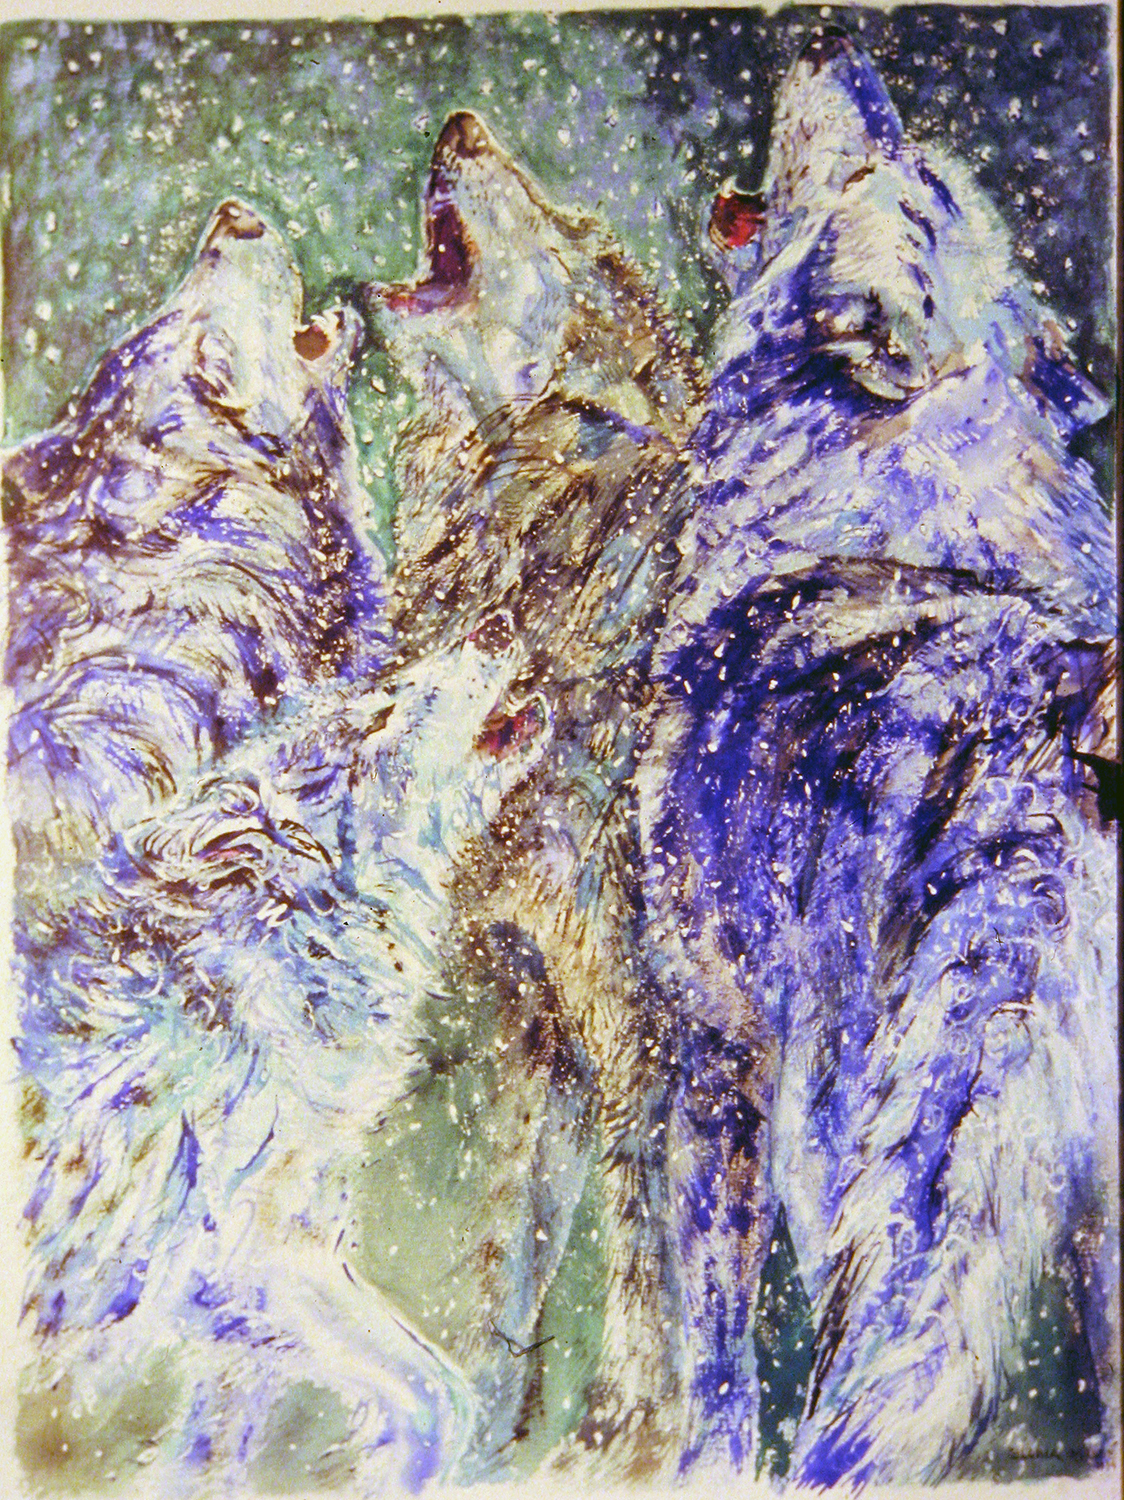 wolves howling in snow 1994 watercolour 28x38